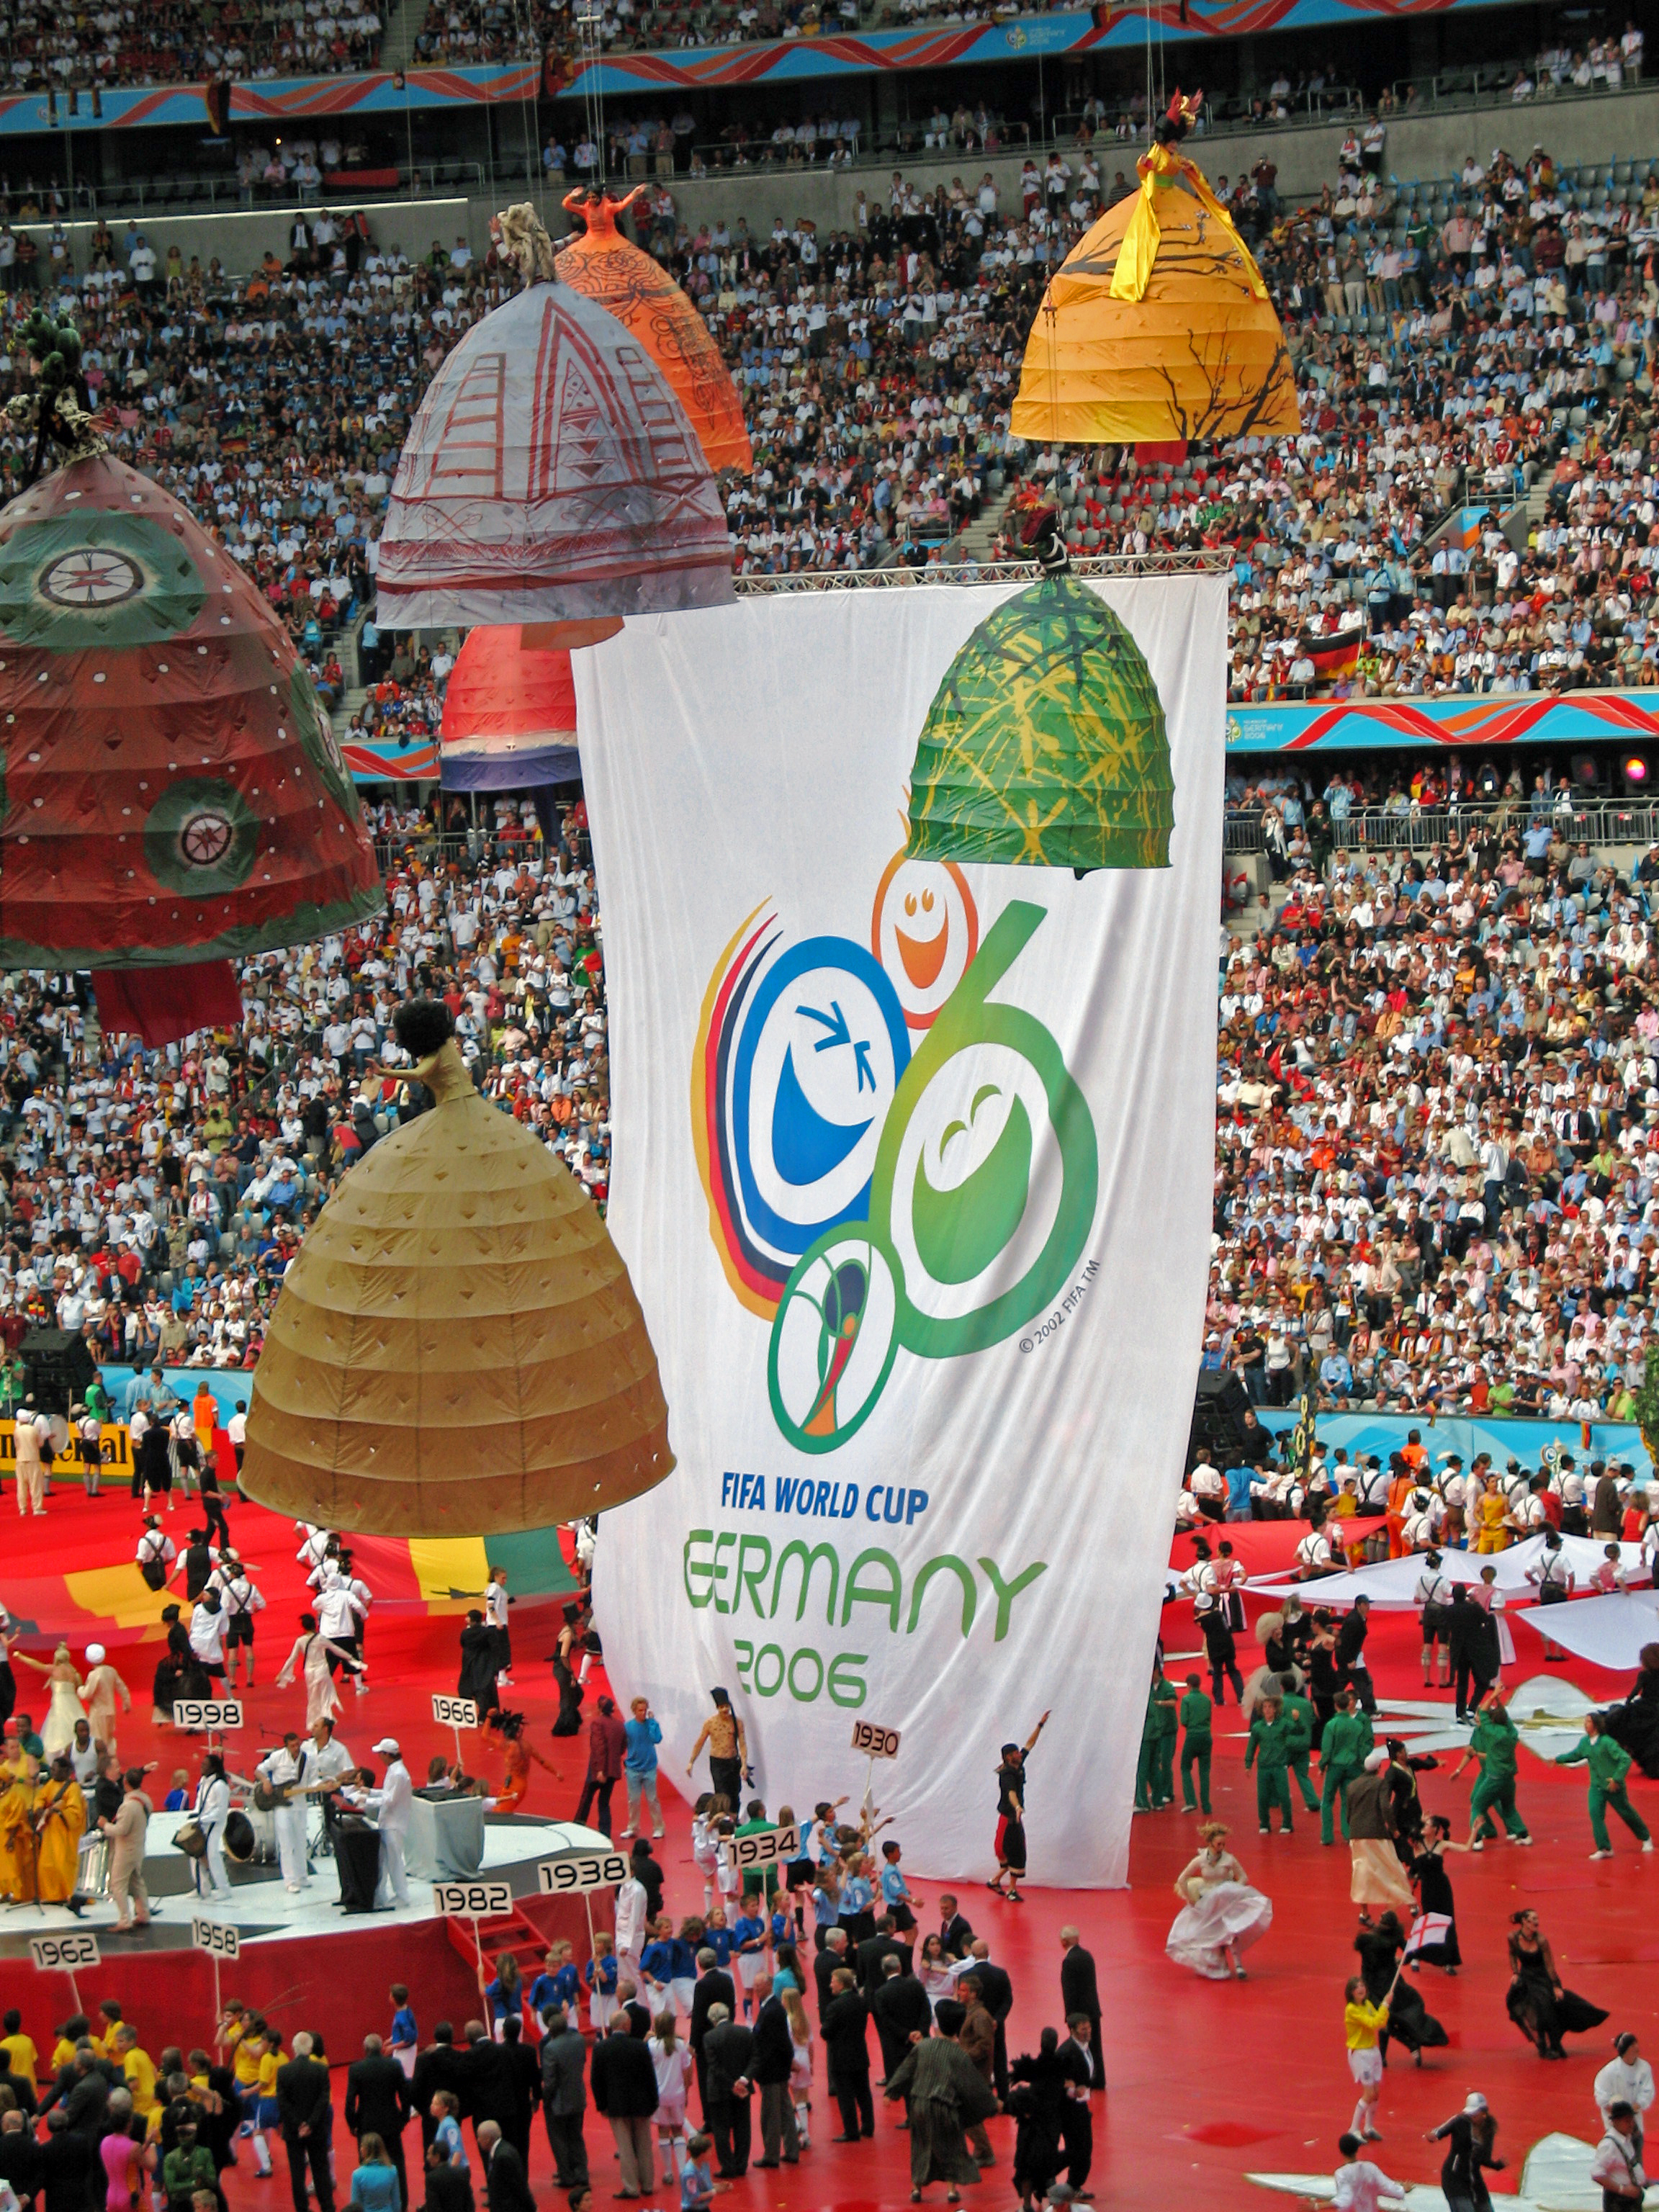 FIFA_World_Cup_2006_Opening_Ceremony.jpg